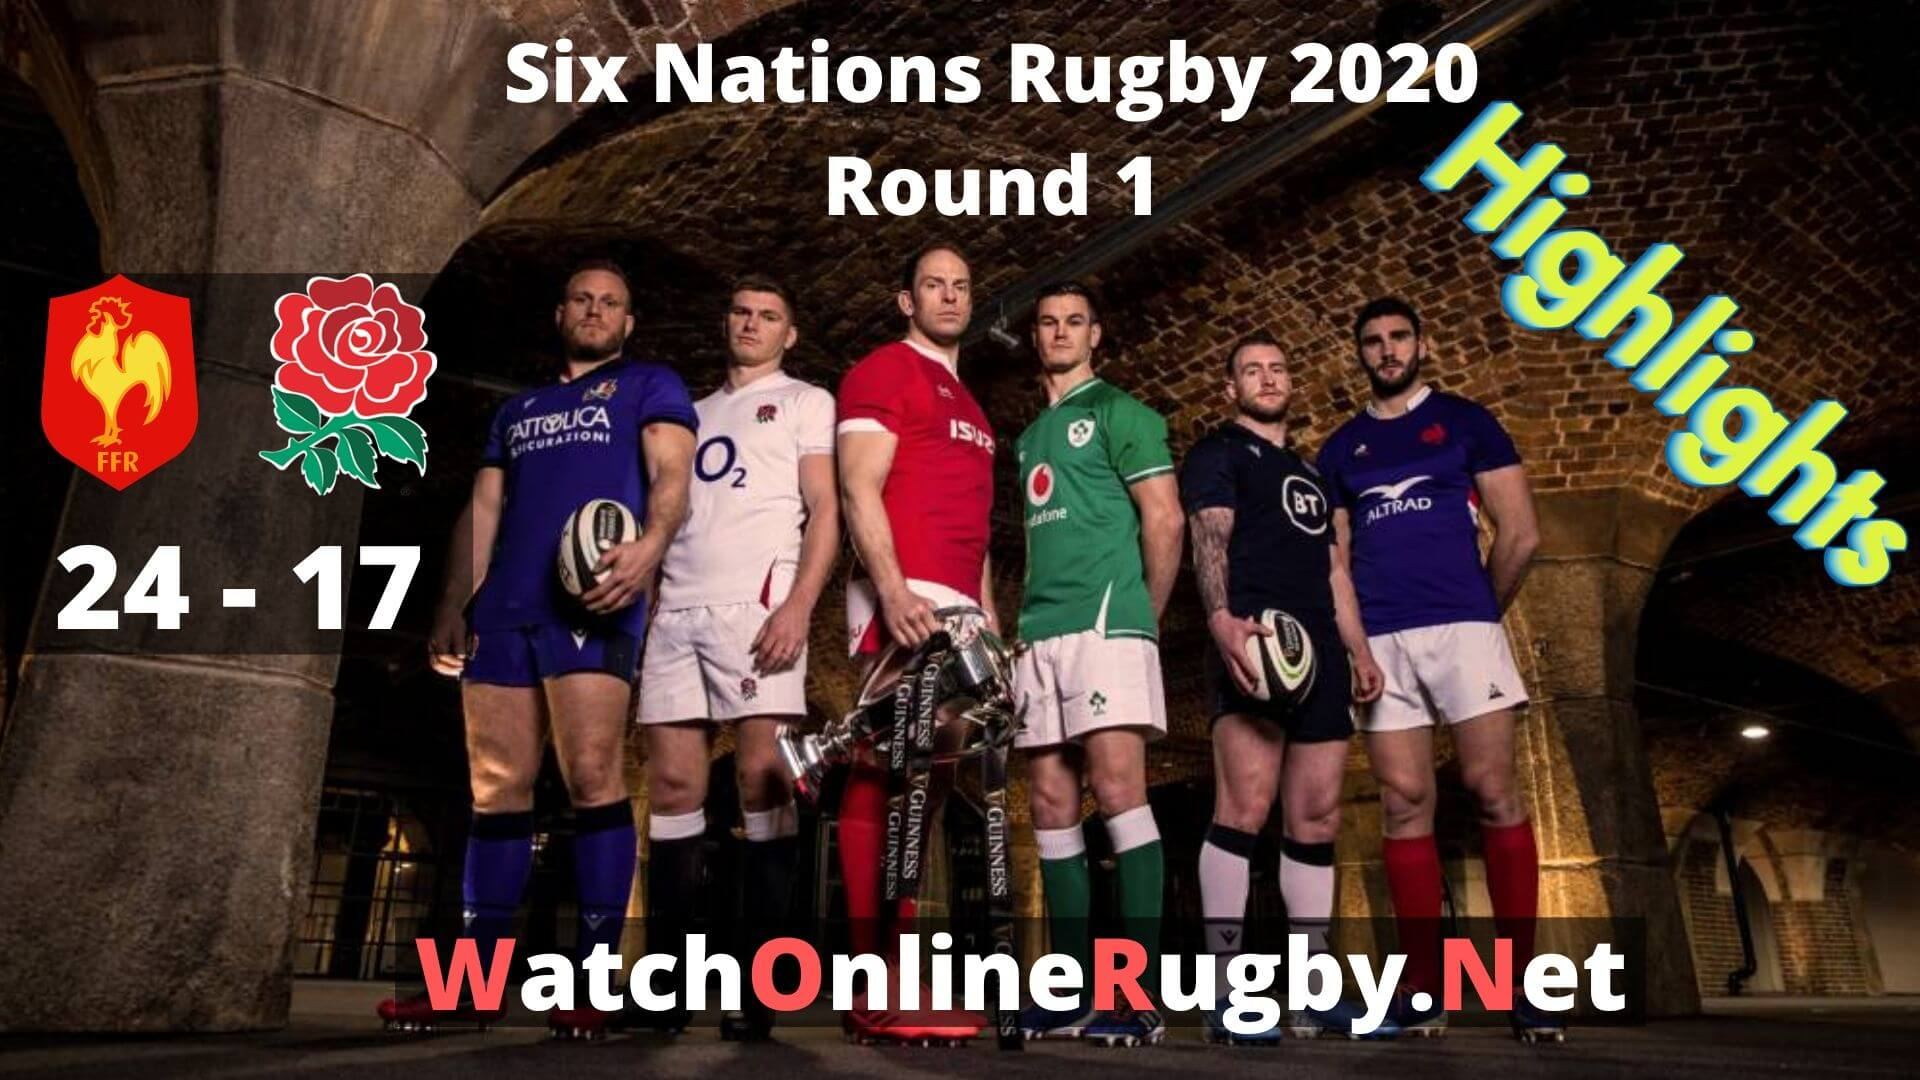 France Vs England 6 Nations Rugby 2020 Highlights Full Match Replay